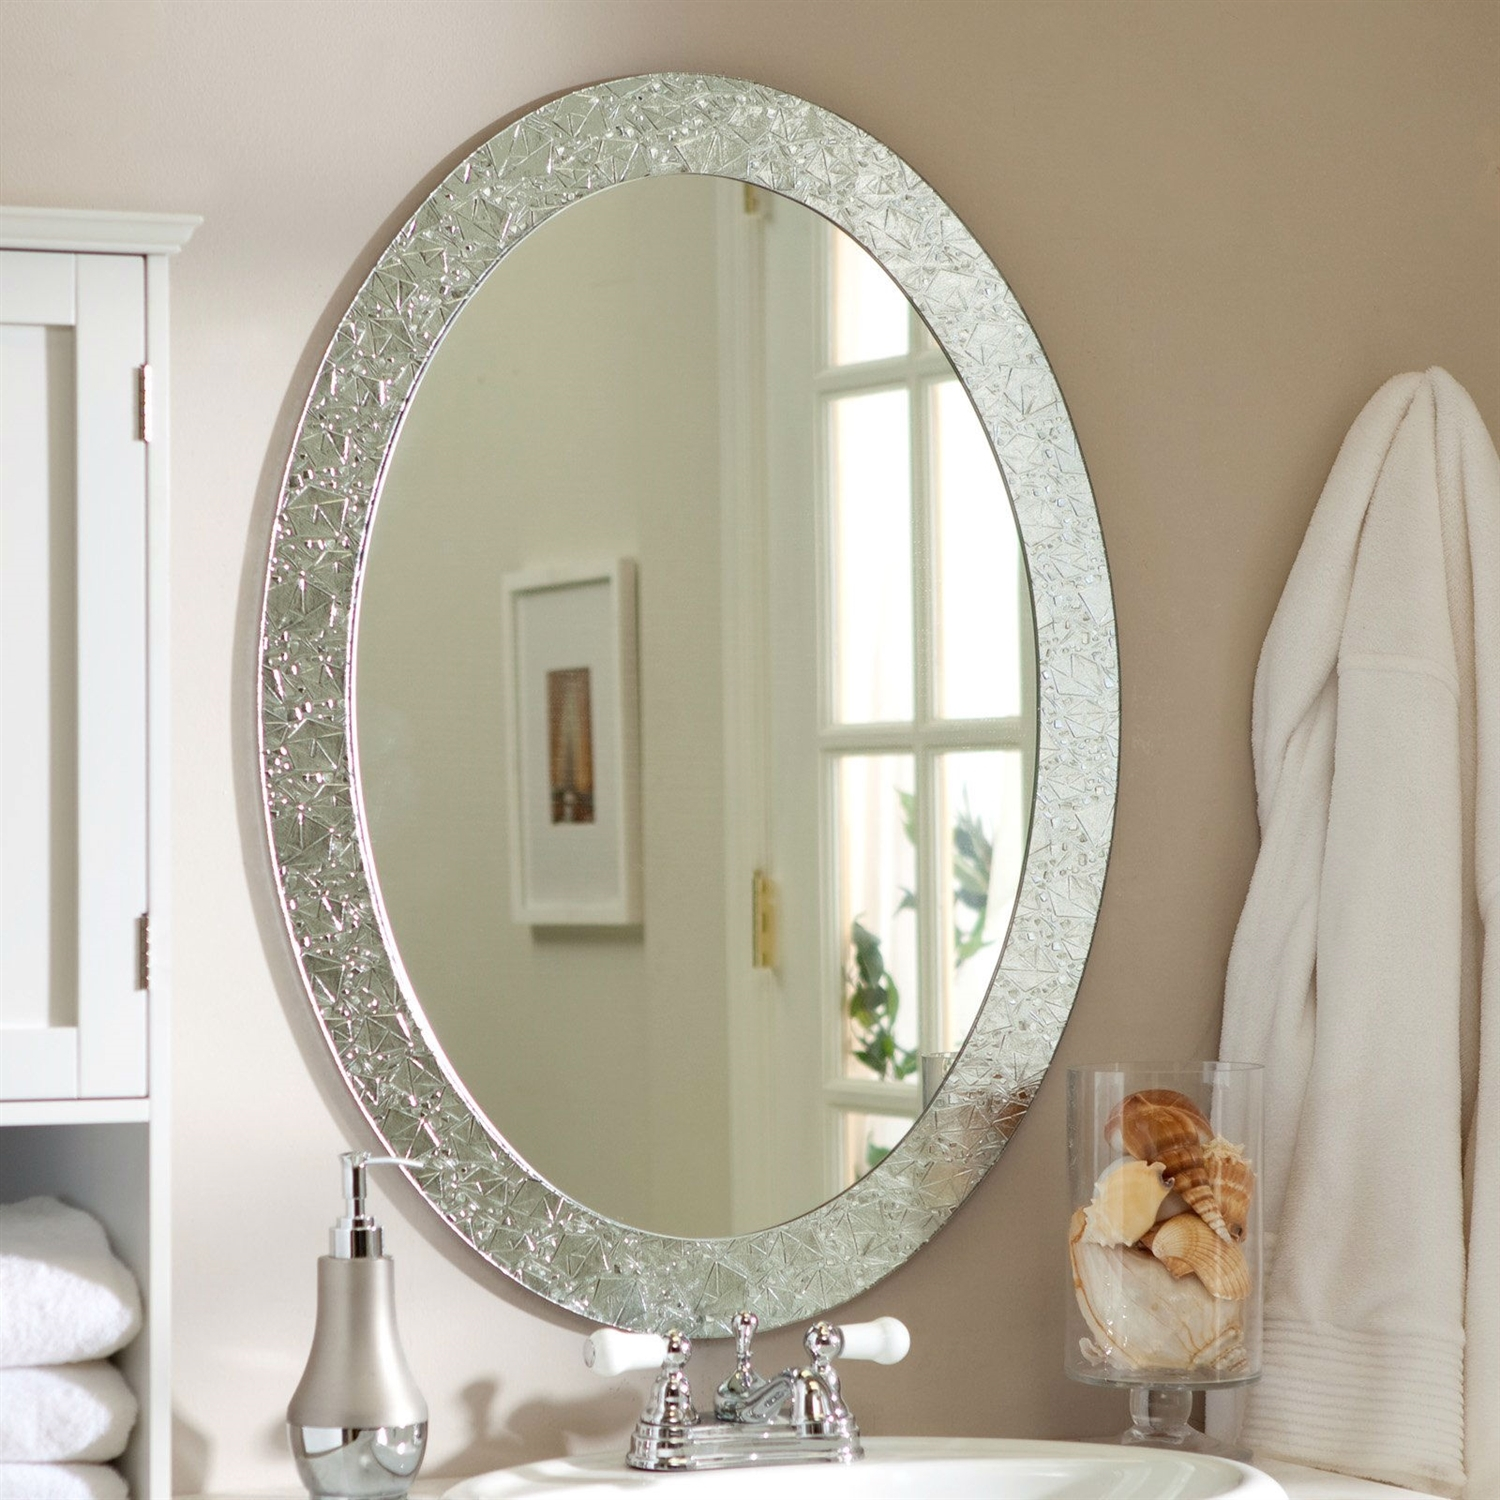 Beautiful Ideas Elegant Wall Mirrors Pretty Oval Frame Wall Shelves Within Pretty Mirrors For Walls (Image 6 of 15)